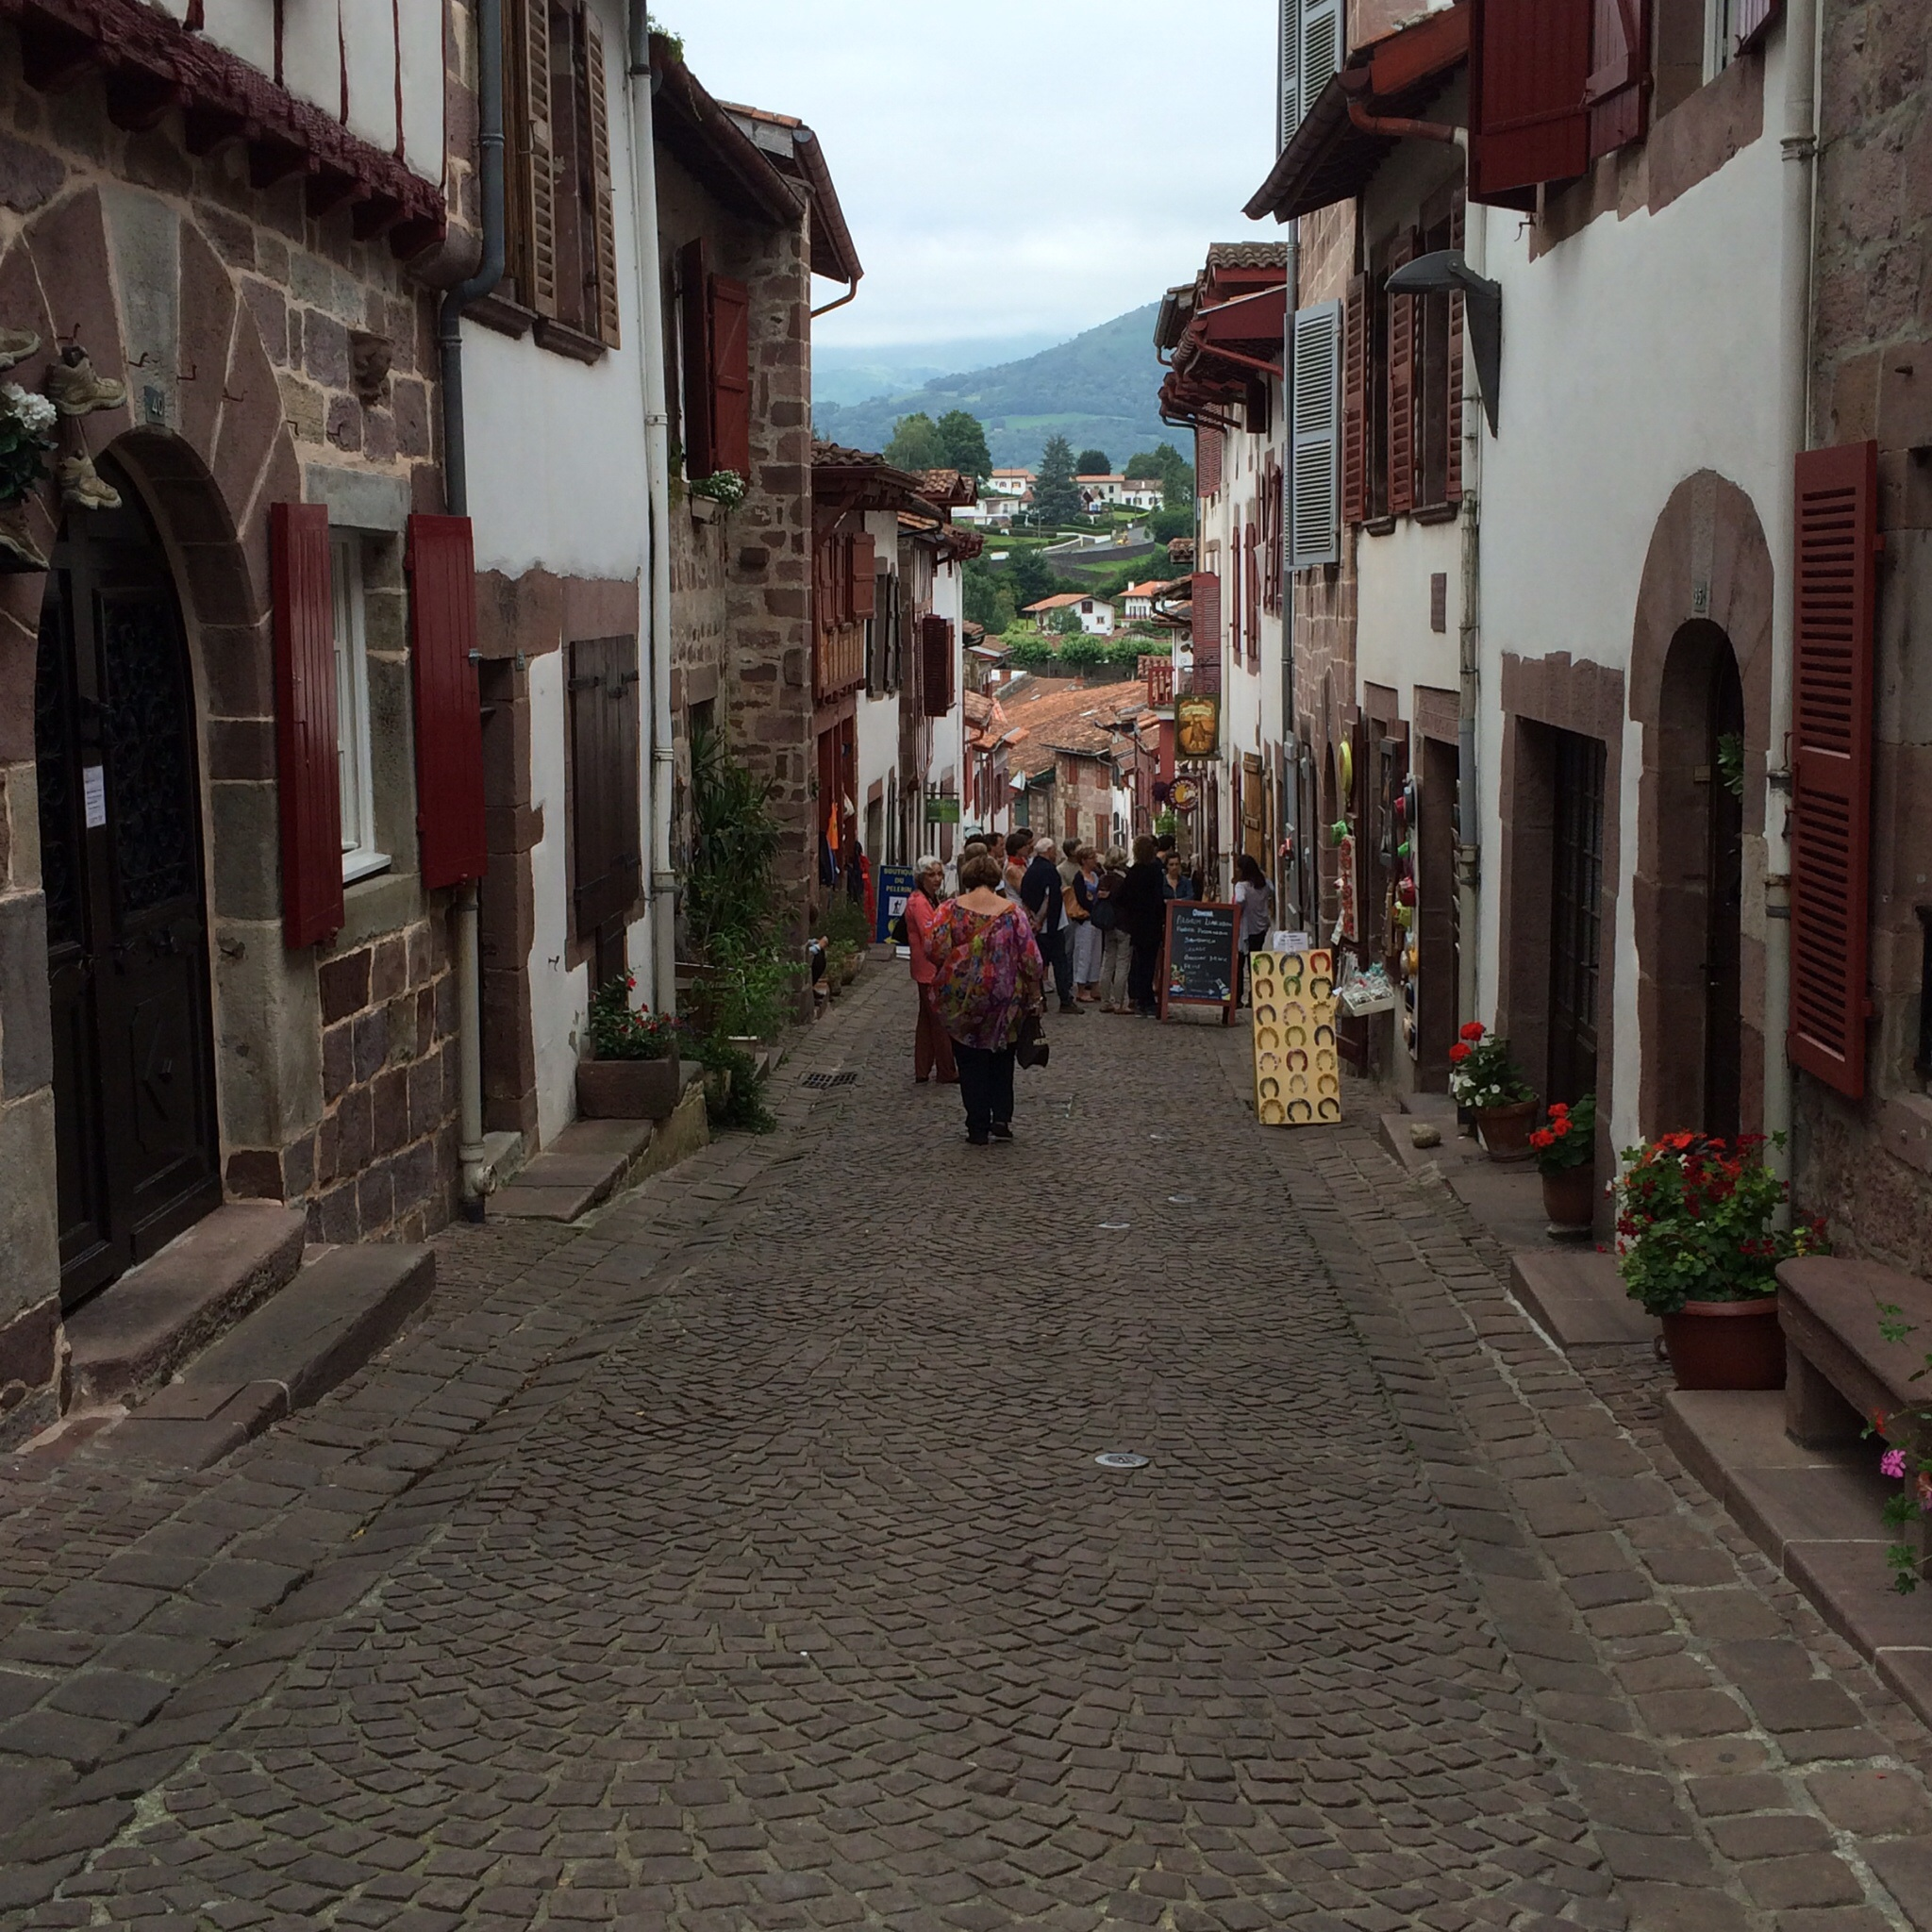 We saw literally hundreds of pilgrims walking this street. If you look closely, you might see one you recognize.